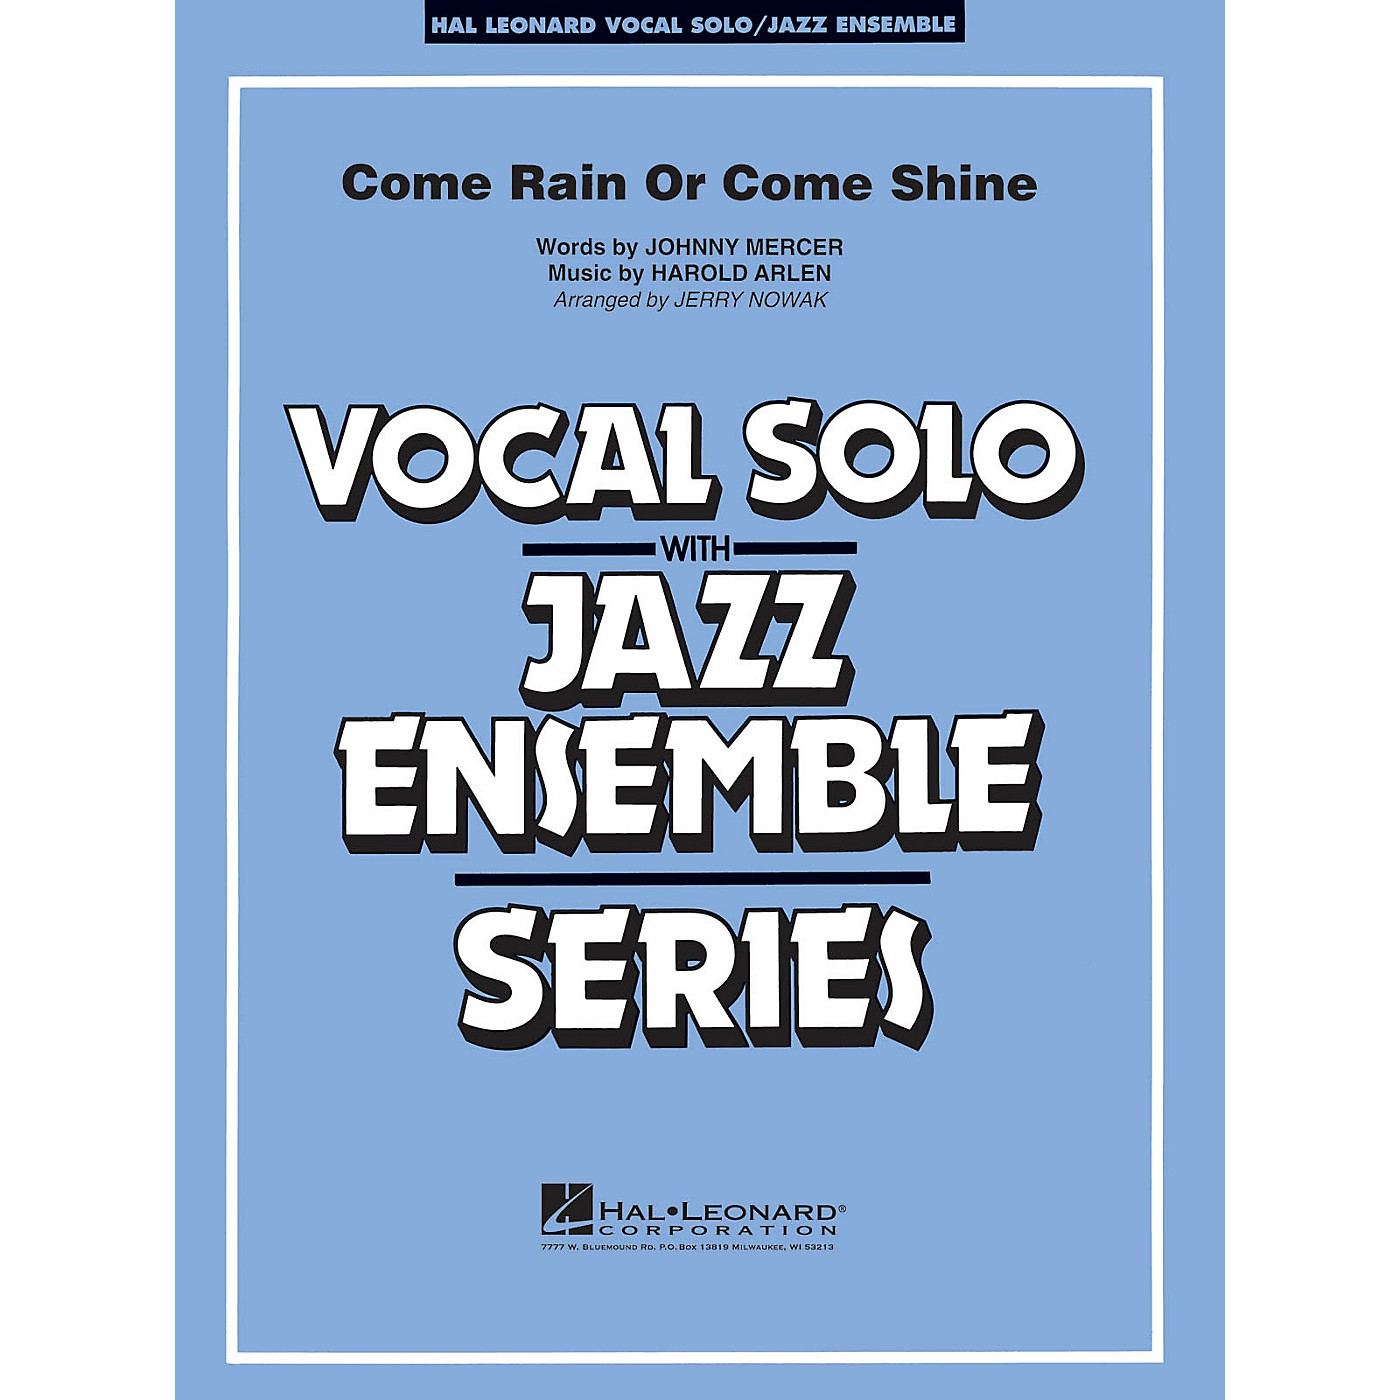 Hal Leonard Come Rain or Come Shine (Key: Db) Jazz Band Level 3-4 Composed by Harold Arlen thumbnail